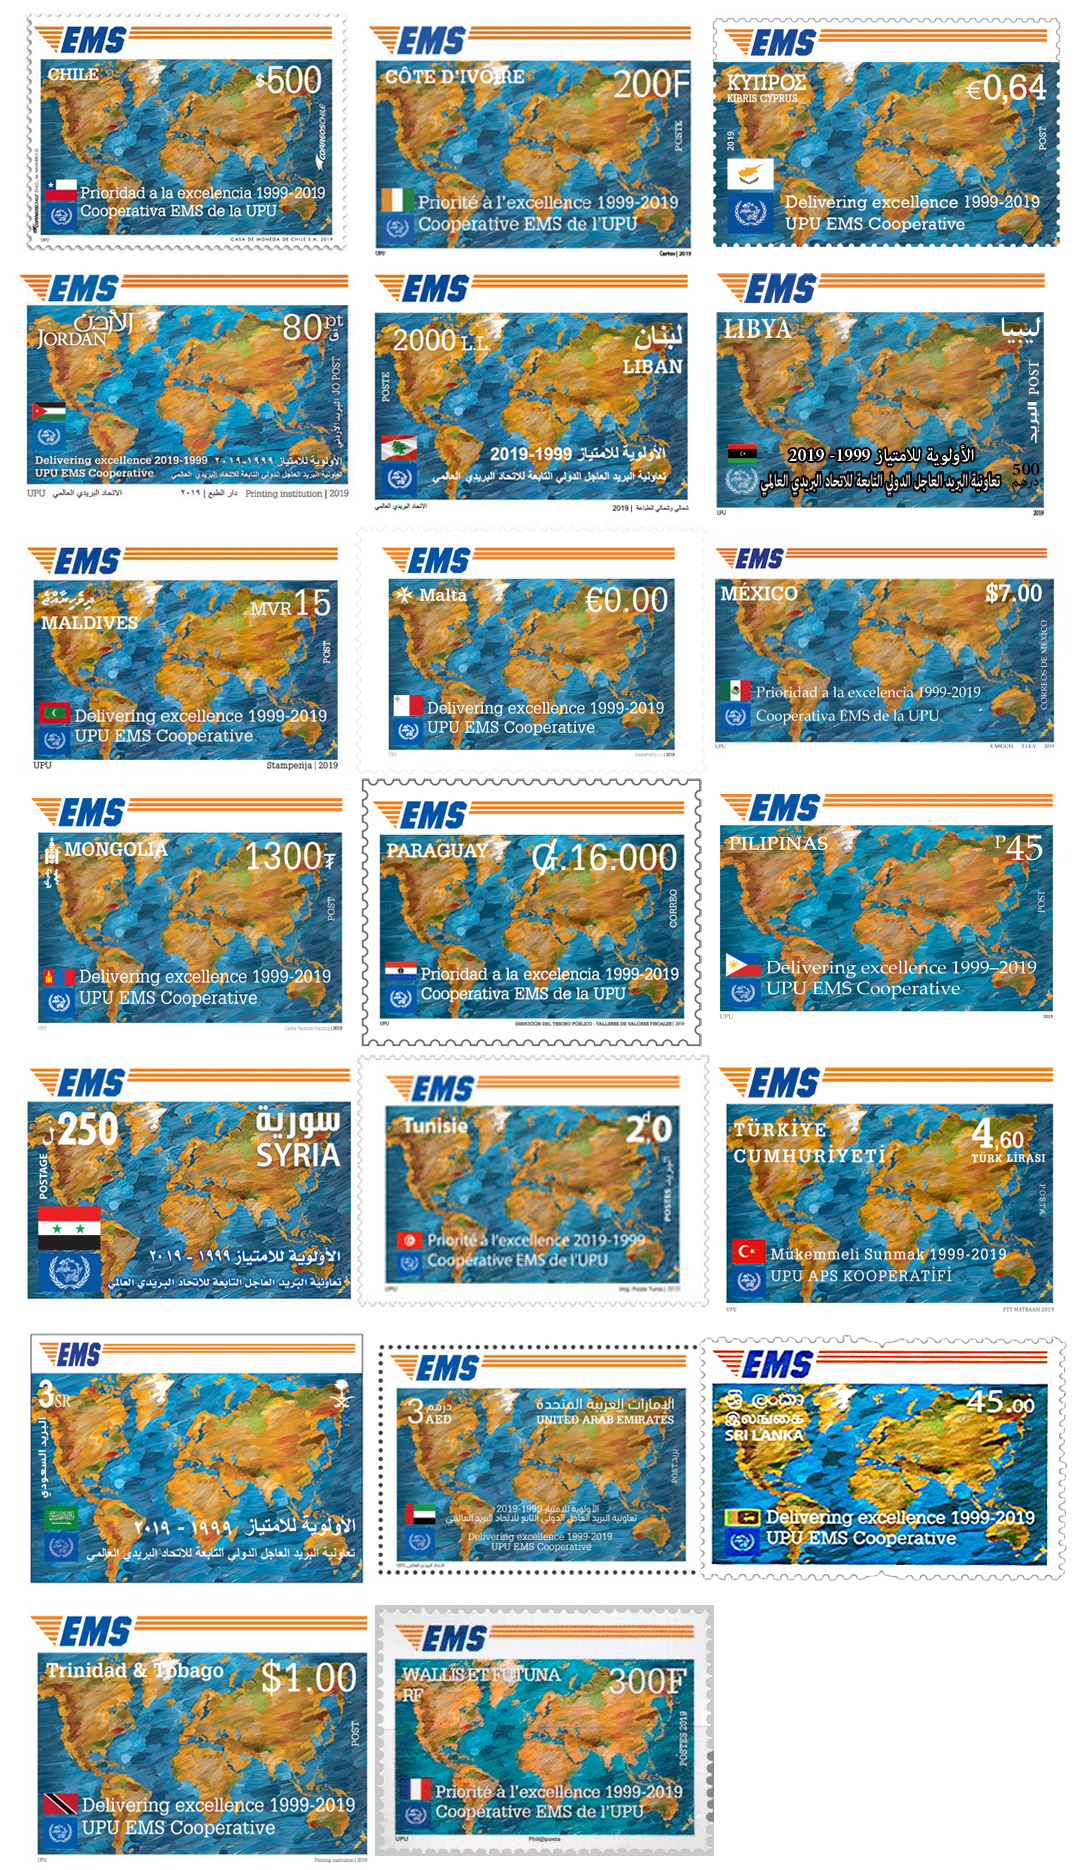 EMS Cooperative 20th anniversary stamps